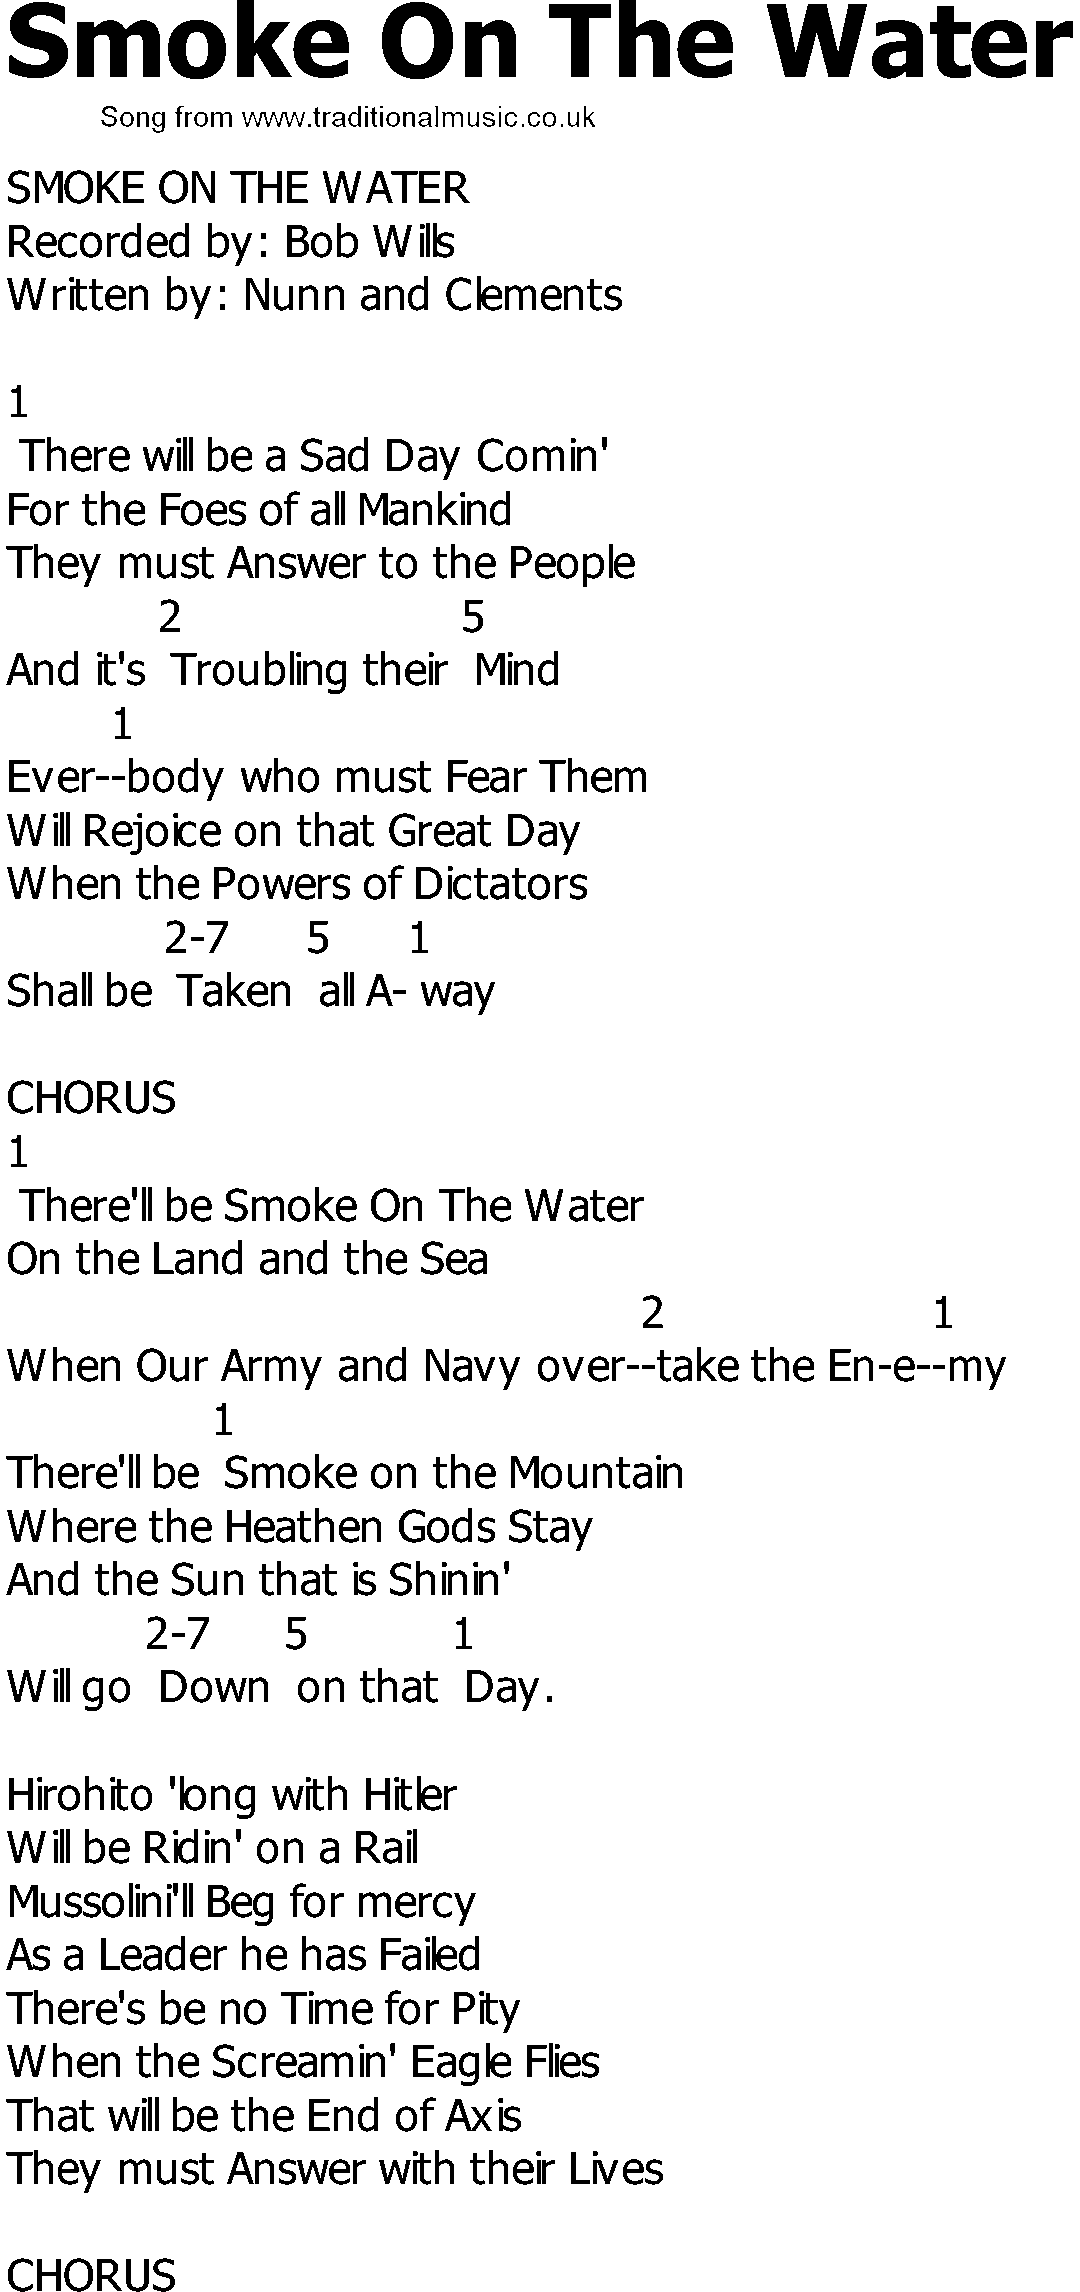 Old Country Song Lyrics With Chords Smoke On The Water